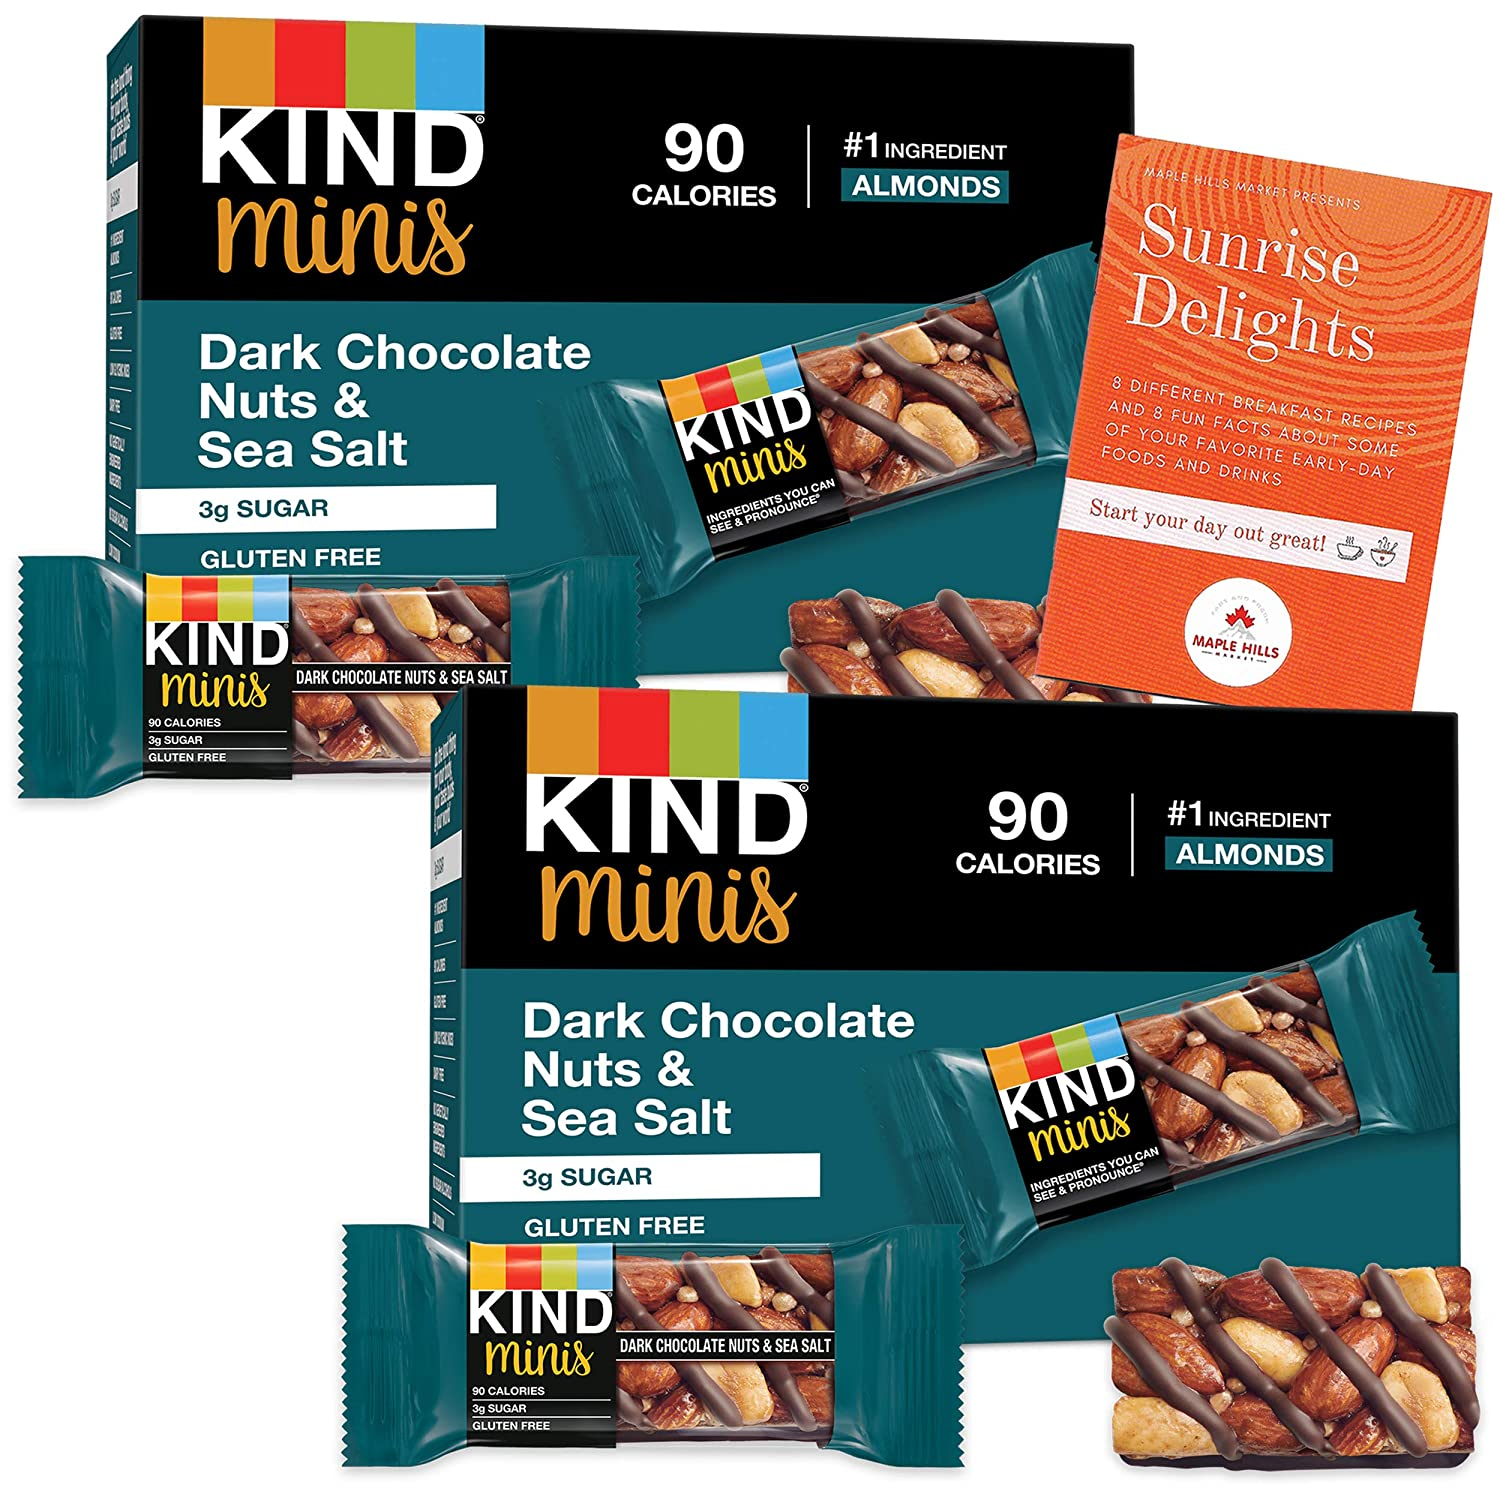 KIND Minis Dark Chocolate Nuts and Sea Salt - 20 Bars Total! - Gluten-Free, Kosher, 0 Trans Fats, Non-GMO, Low Sodium, and a Good Source of Fiber - Bonus Breakfast Fun Facts and Recipe Booklet Inside!